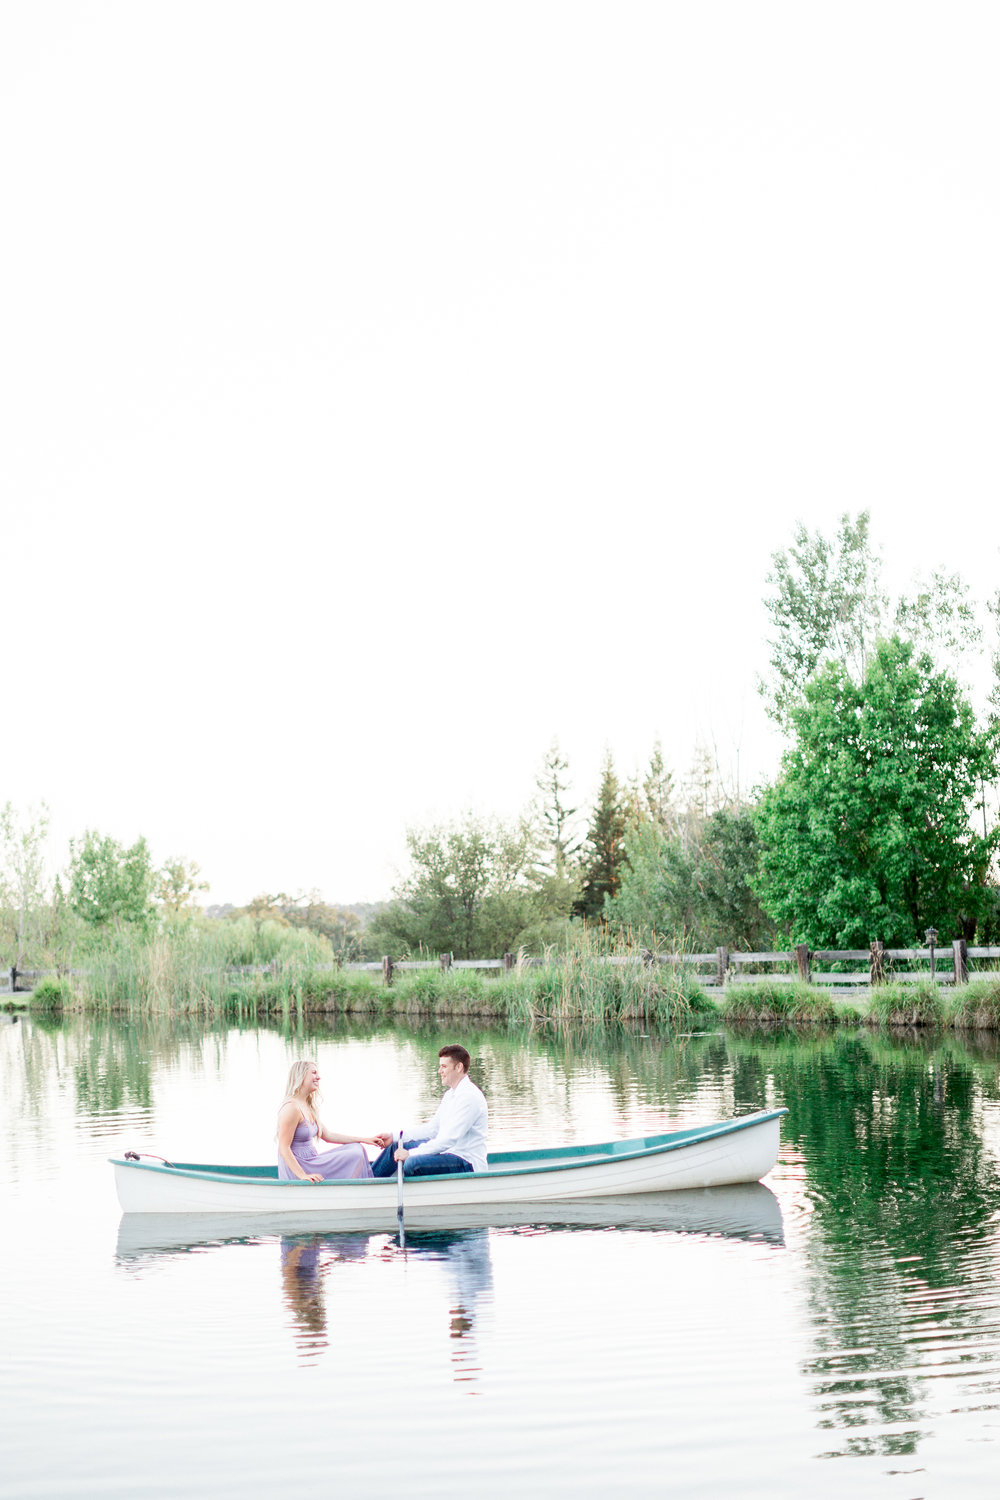 bywater-hollow-lavendar-farm-engagement-photography (142 of 155).jpg